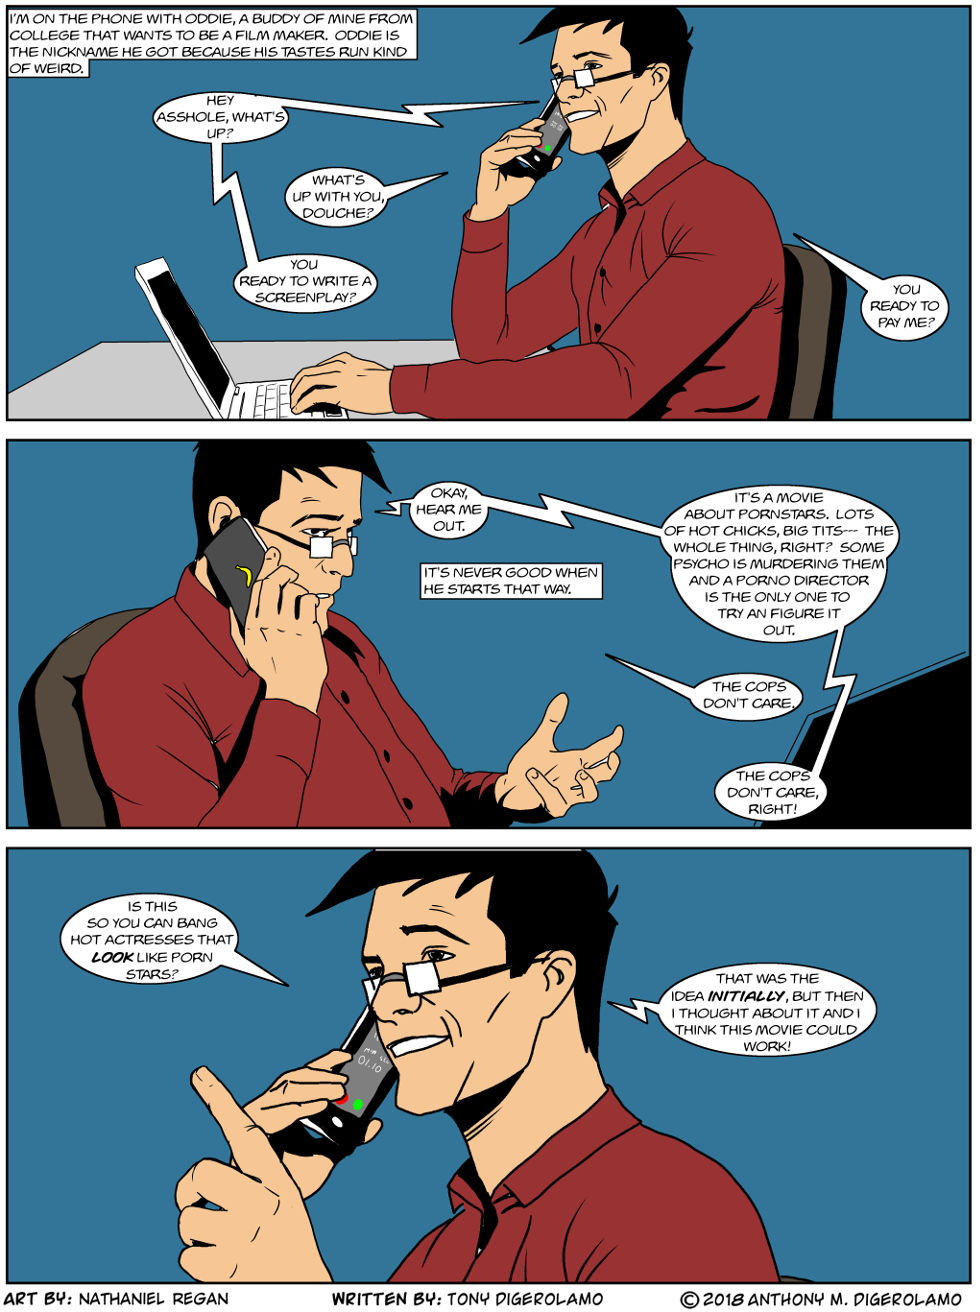 digital hobo: when friends pitch a movie – the webcomic factory